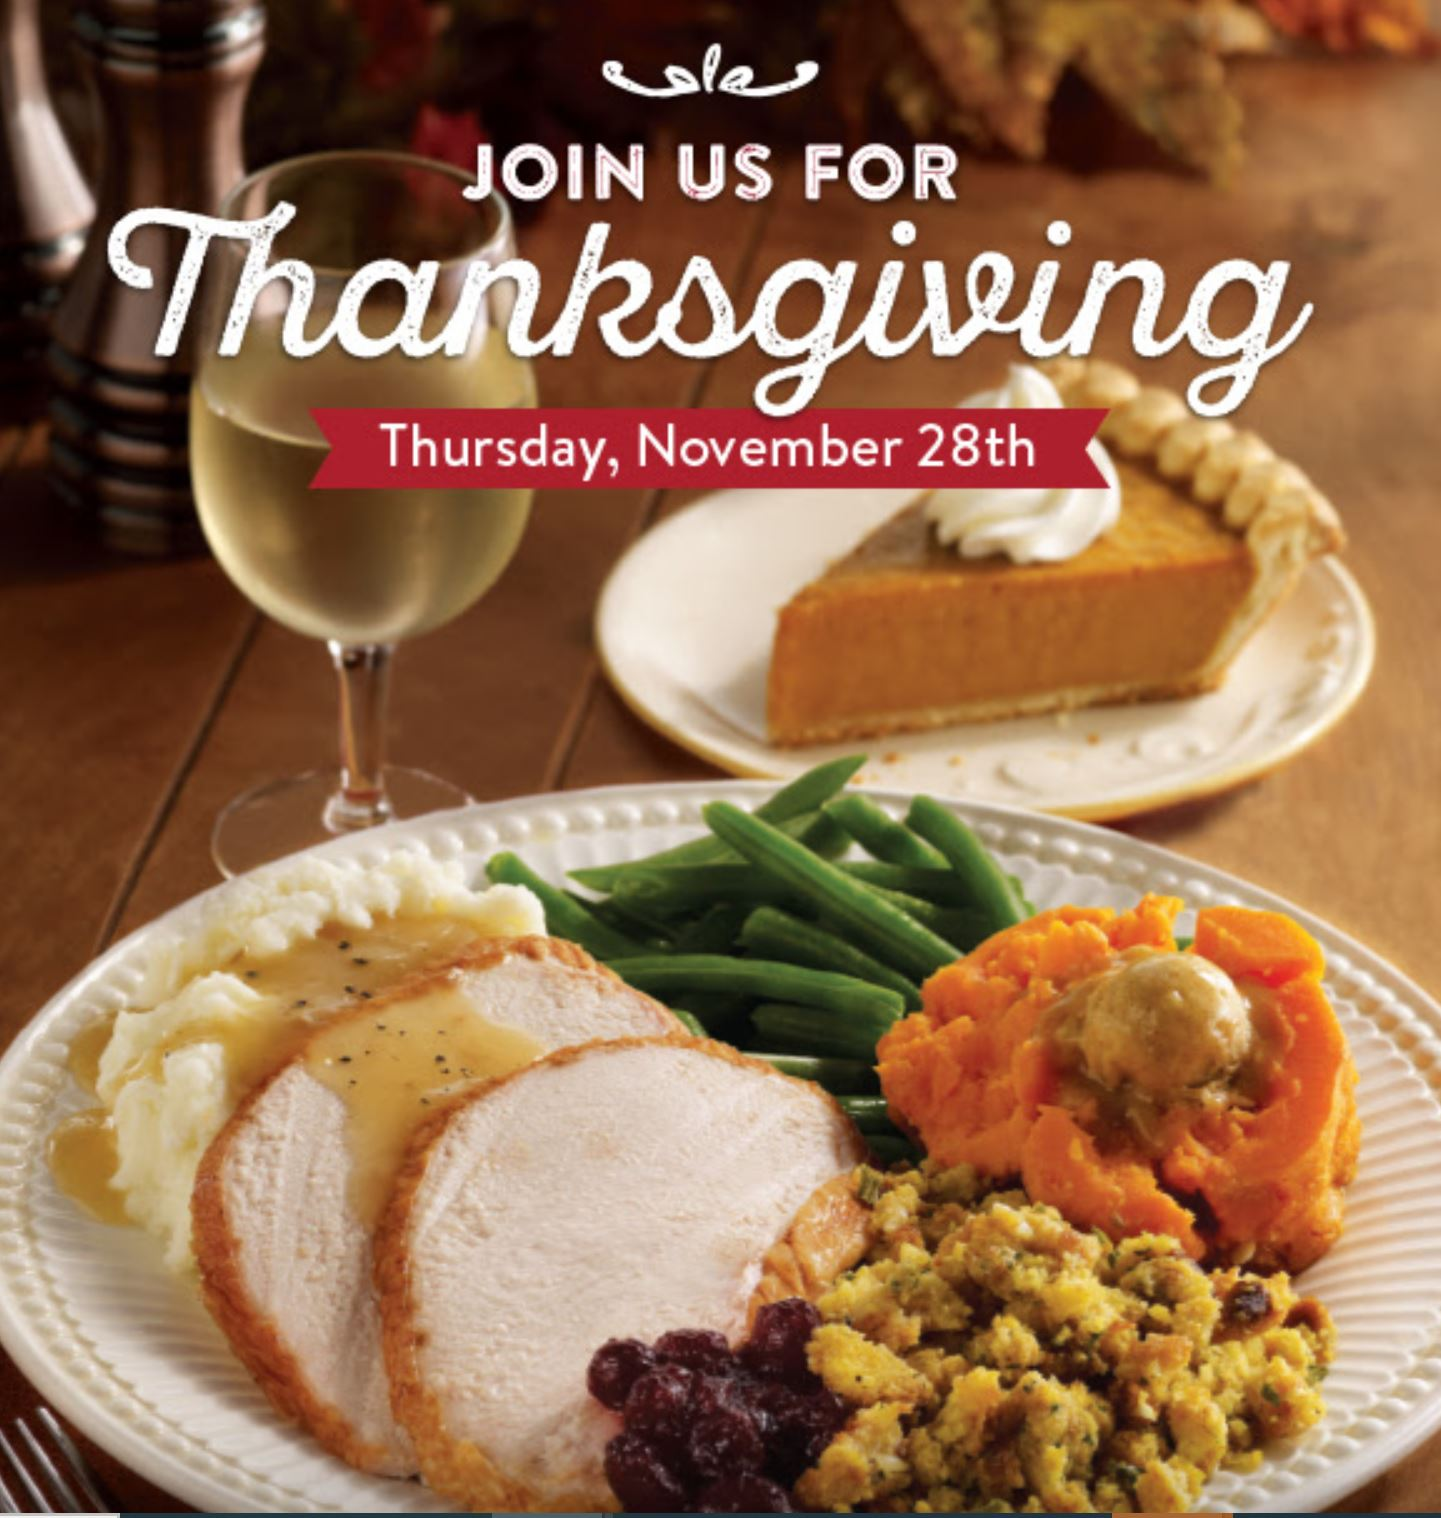 sizzler thanksgiving 2019-official